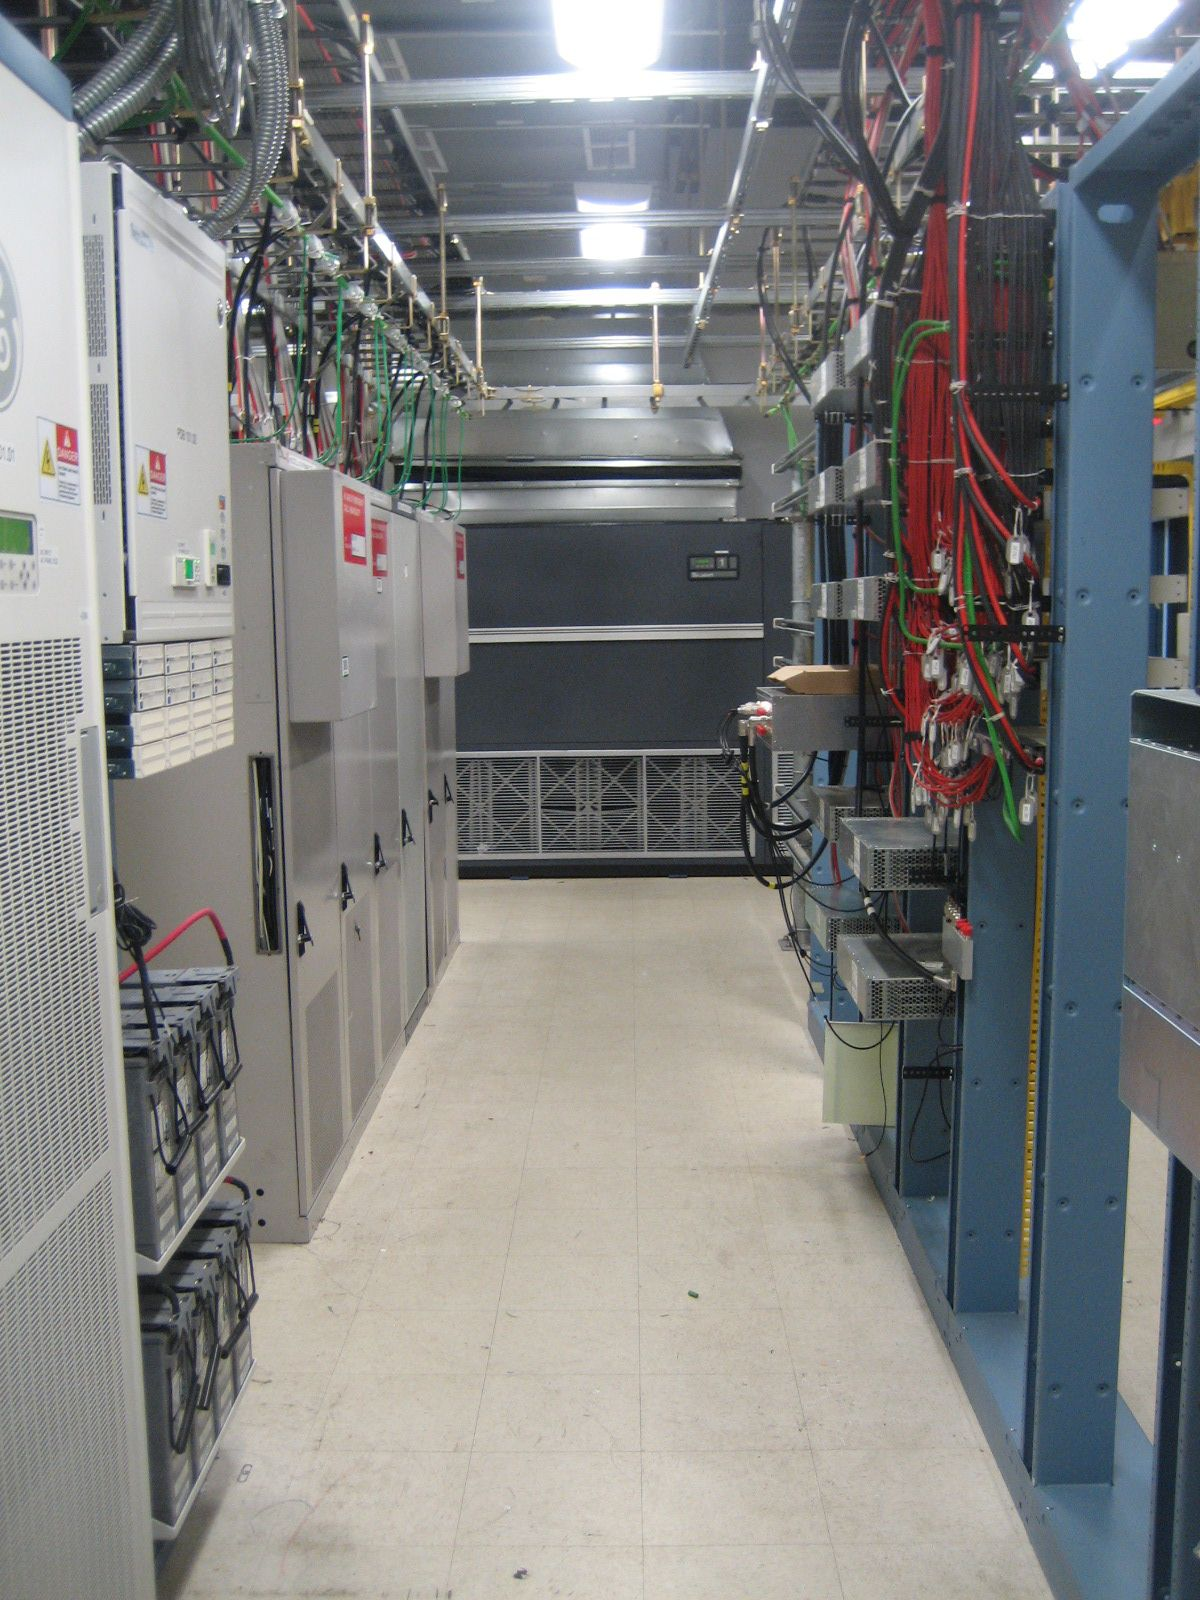 Electrical Wiring For Building 8211 Standard And Code